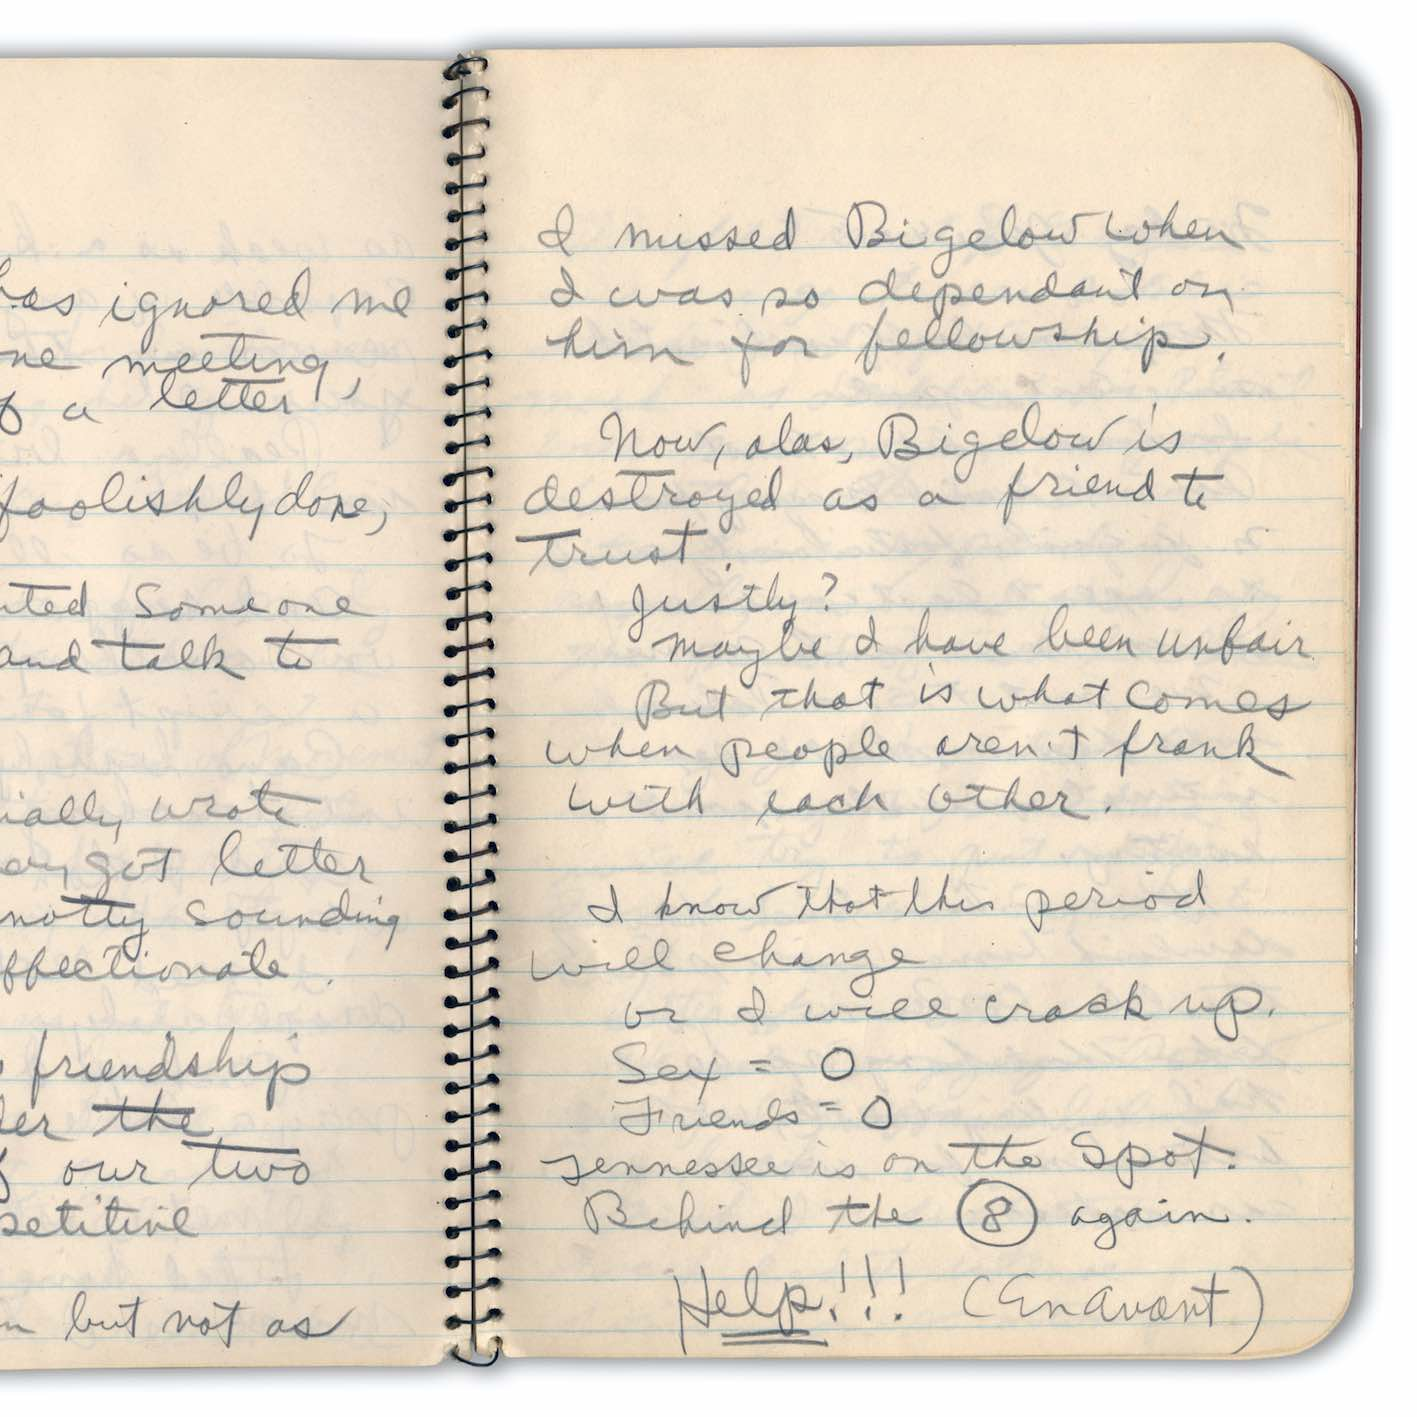 Tennessee Williams's journal, 1943